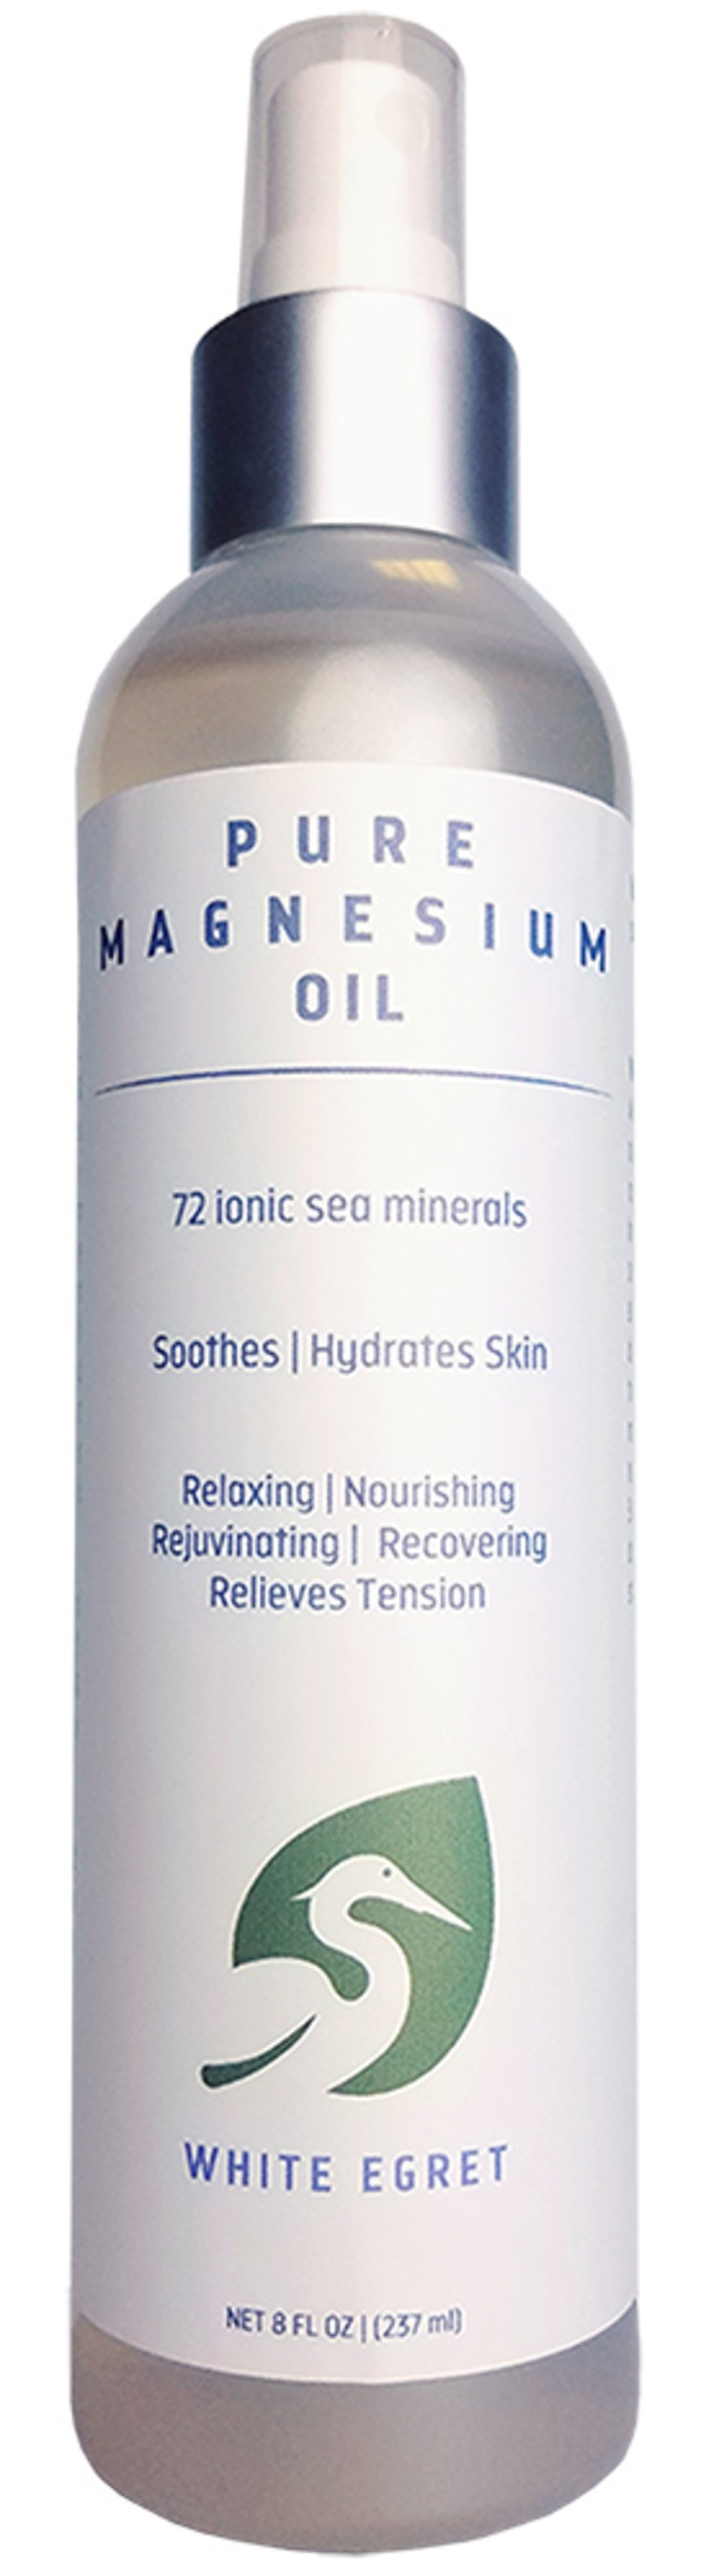 Pure Magnesium Oil <p><b>From the Manufacturer's Label:</b></p>  <p><b>From Utah's ancient inland sea, the Great Salt Lake*</b></p> <p><b>A rapidly absorbed topical spray</b></p> <p><b>All Natural and Concentrated</b></p> <p>*The Great Salt Lake in Utah is a mineral-rich inland sea and is a remnant of the ancient Lake Bonneville, the largest lake of the last Ice Age. Its waters are 11 ti